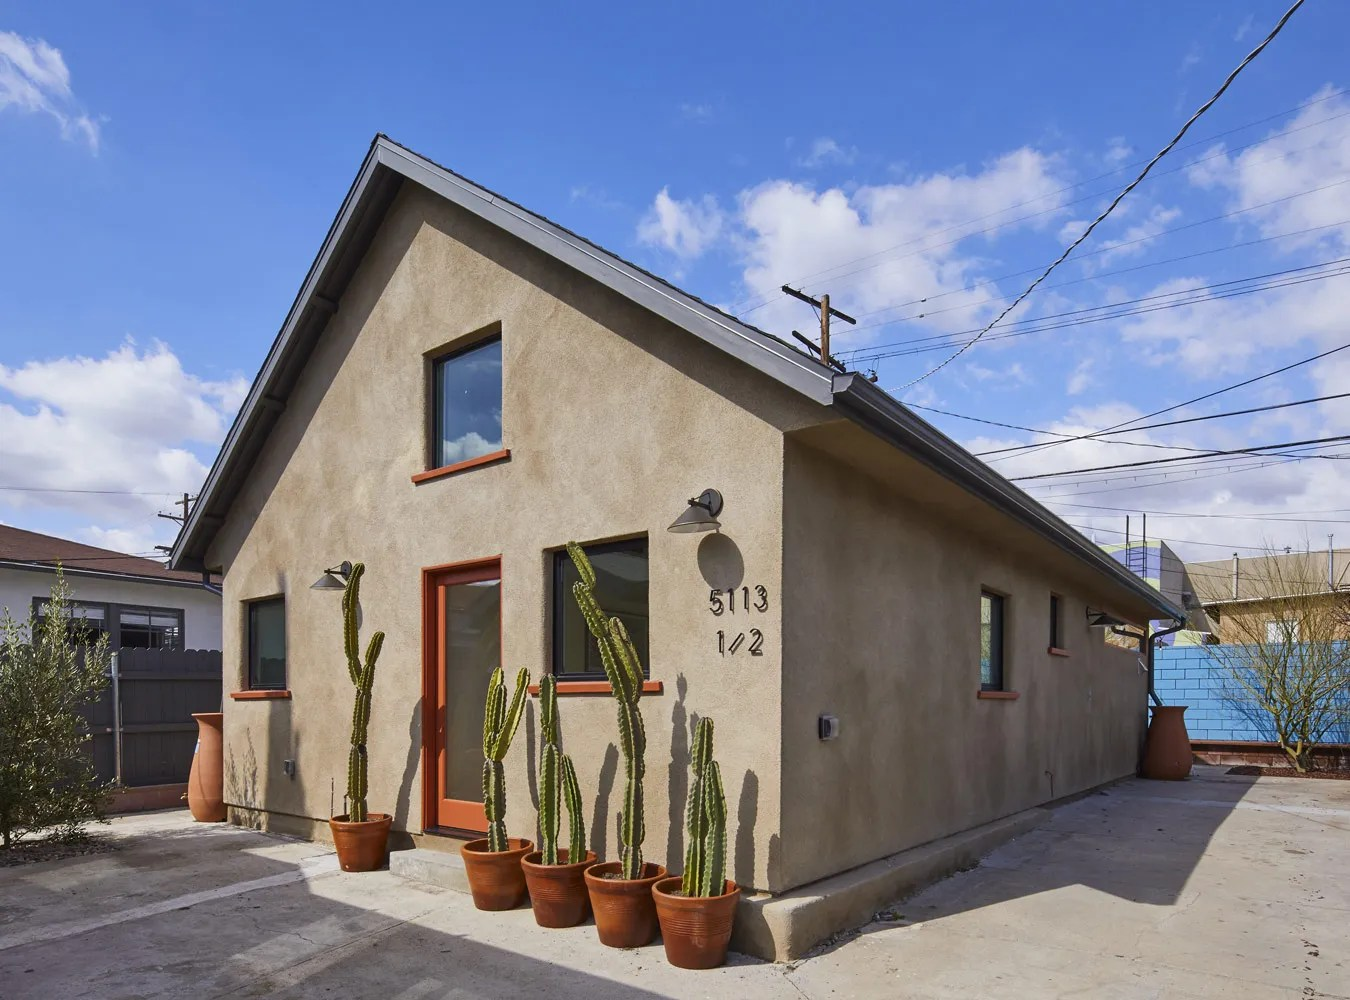 Accessory Dwelling Units Are On The Rise And This One Is Cute As A Button Architectural Digest